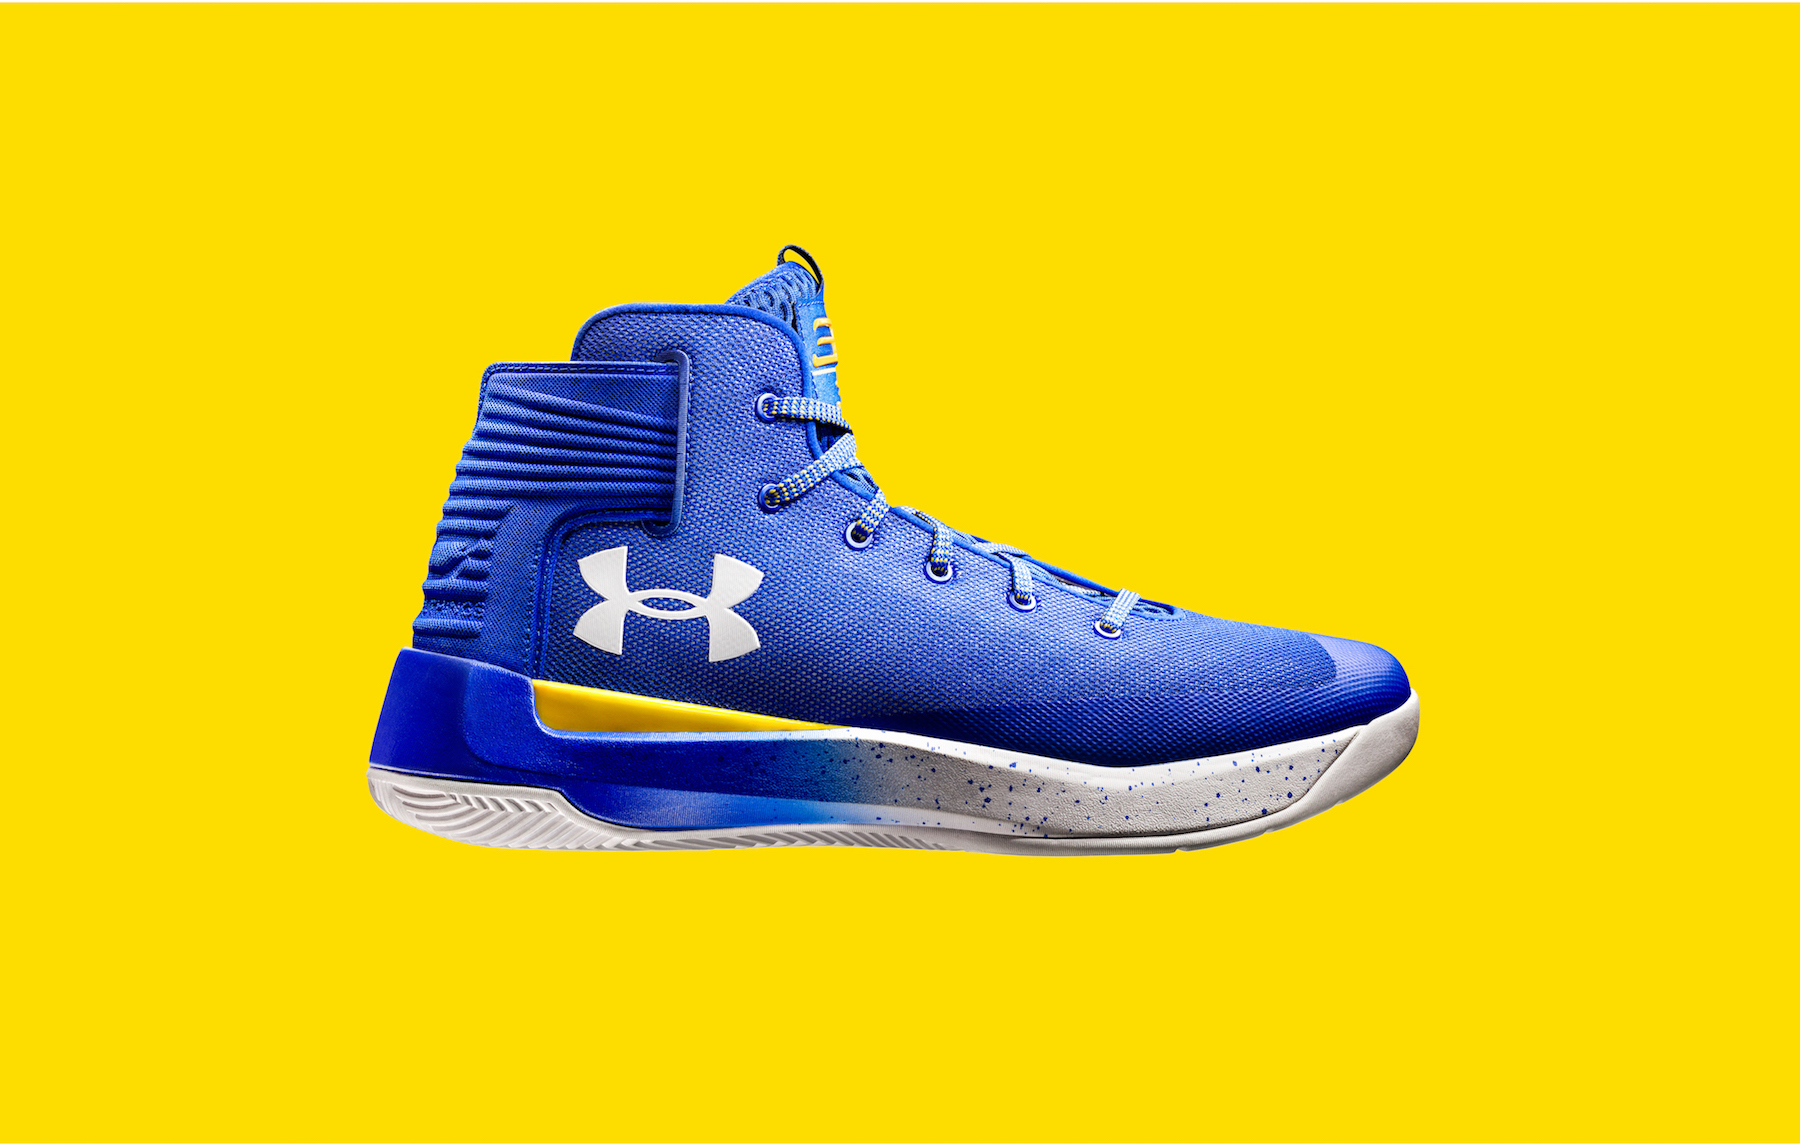 Curry Under Armour Shoes Review